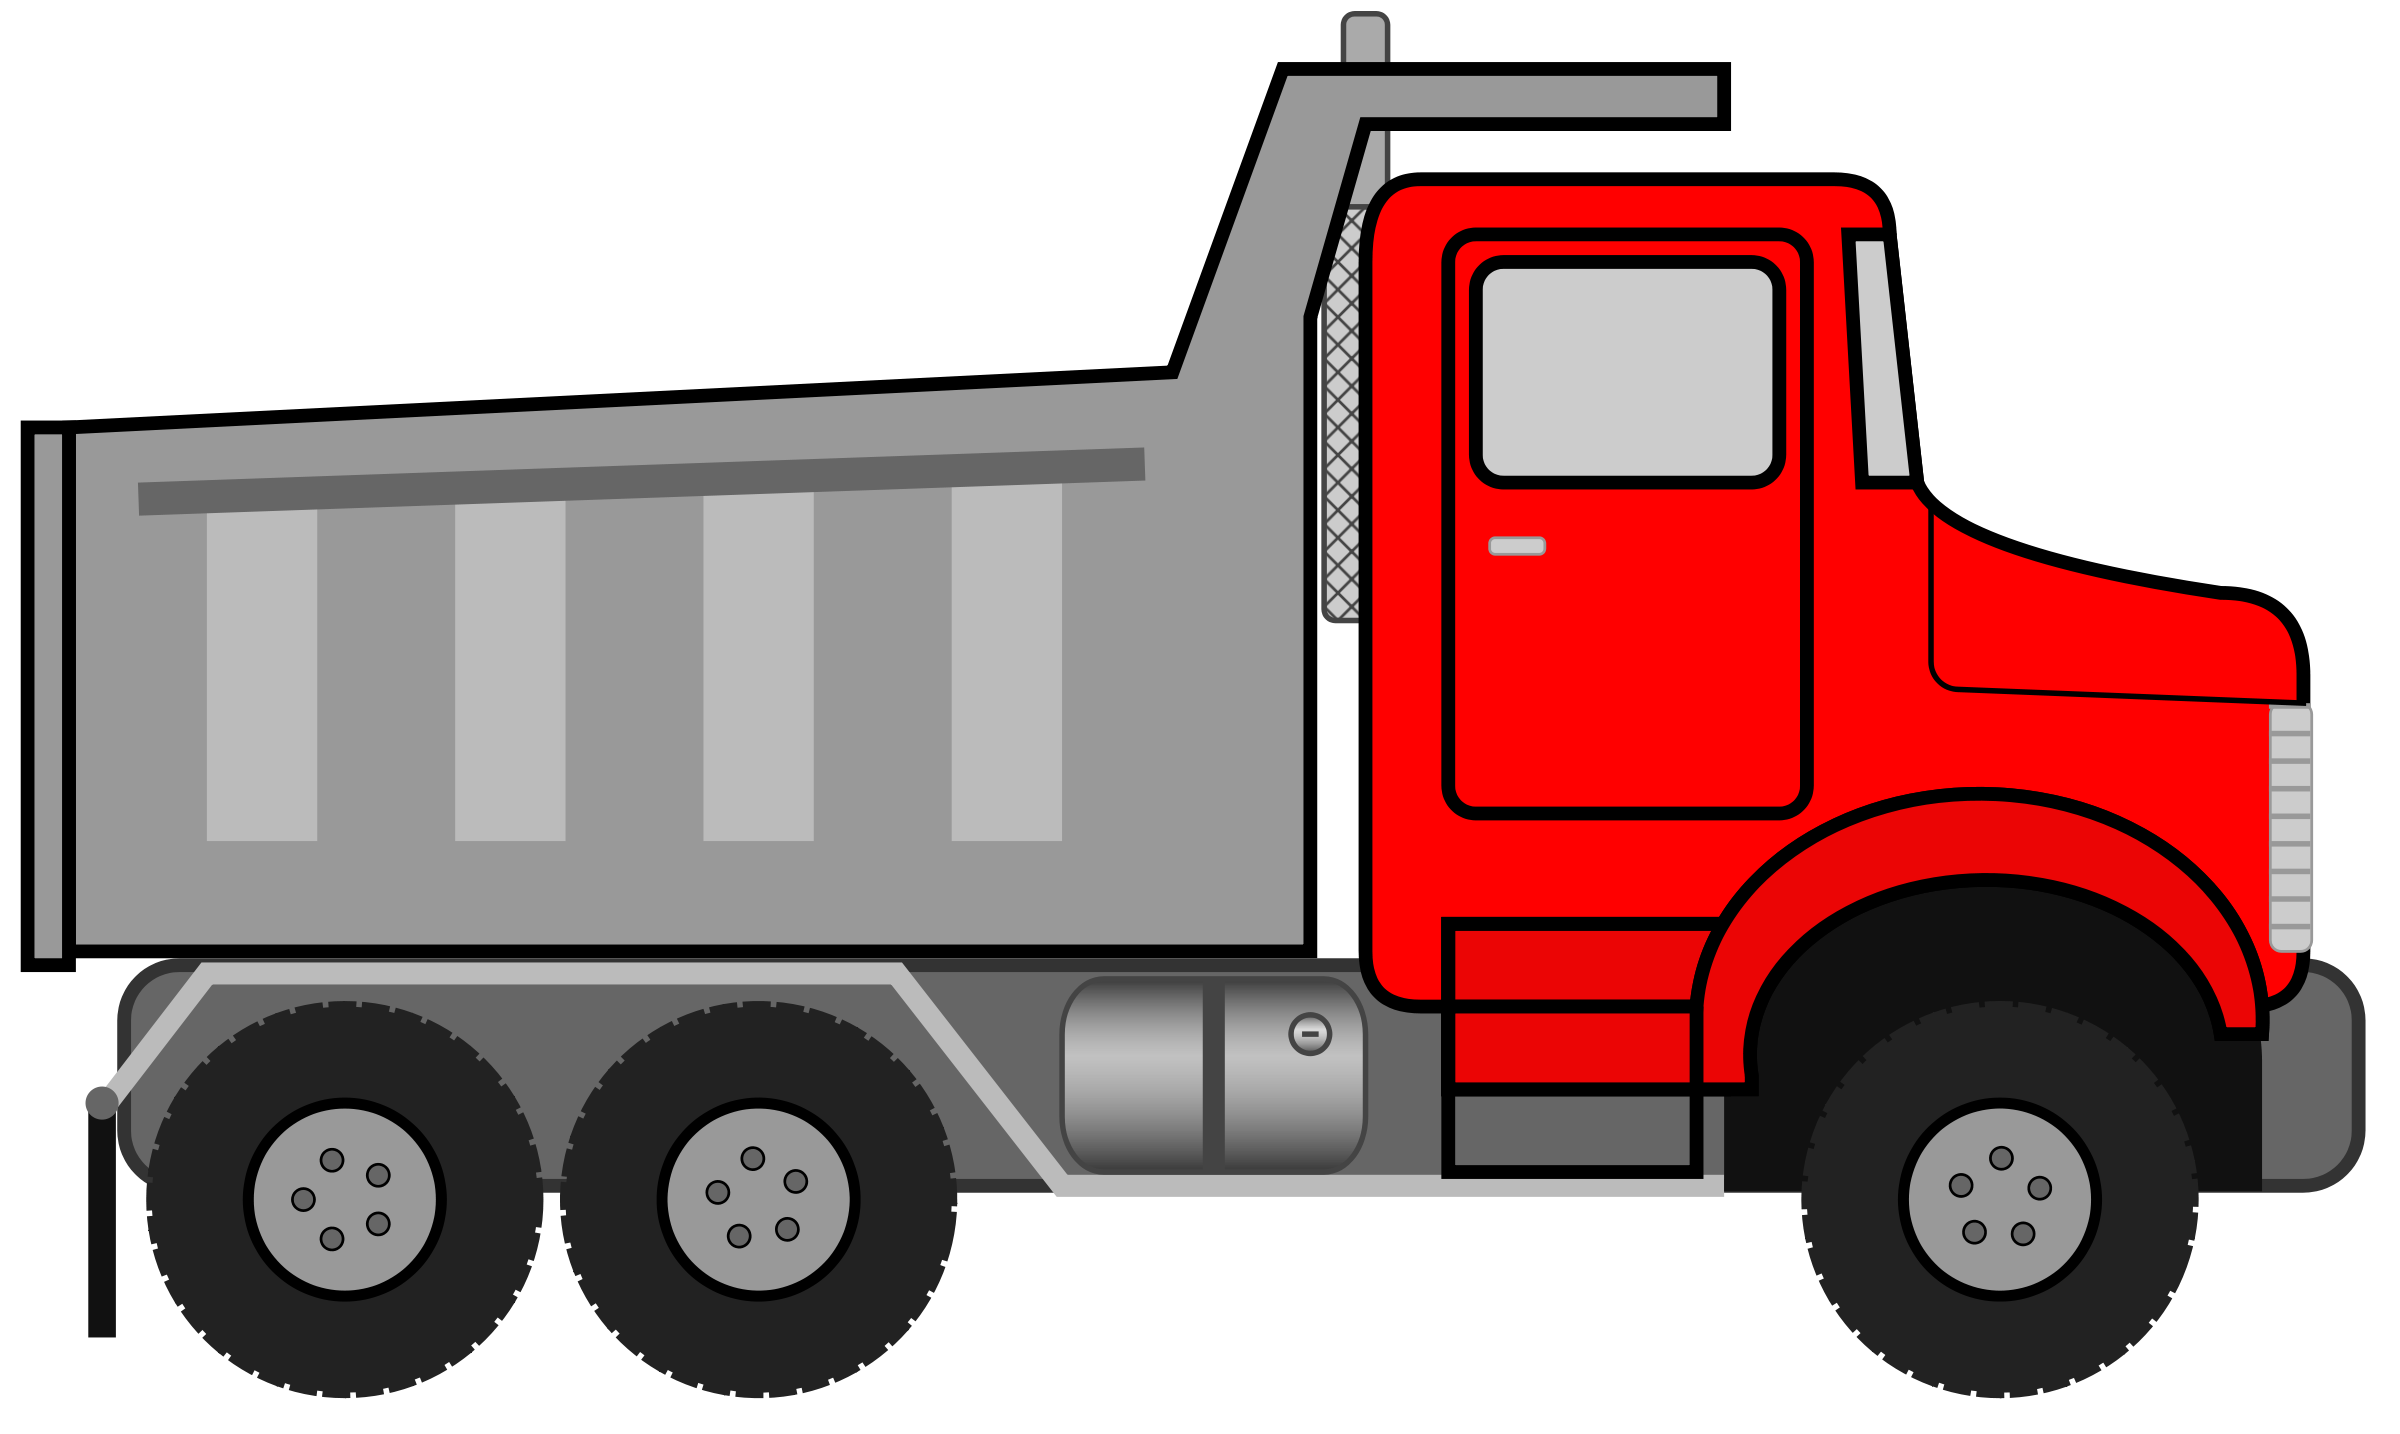 2400x1434 Truck Black And White Dump Truck Clipart Black And White Free 3 4